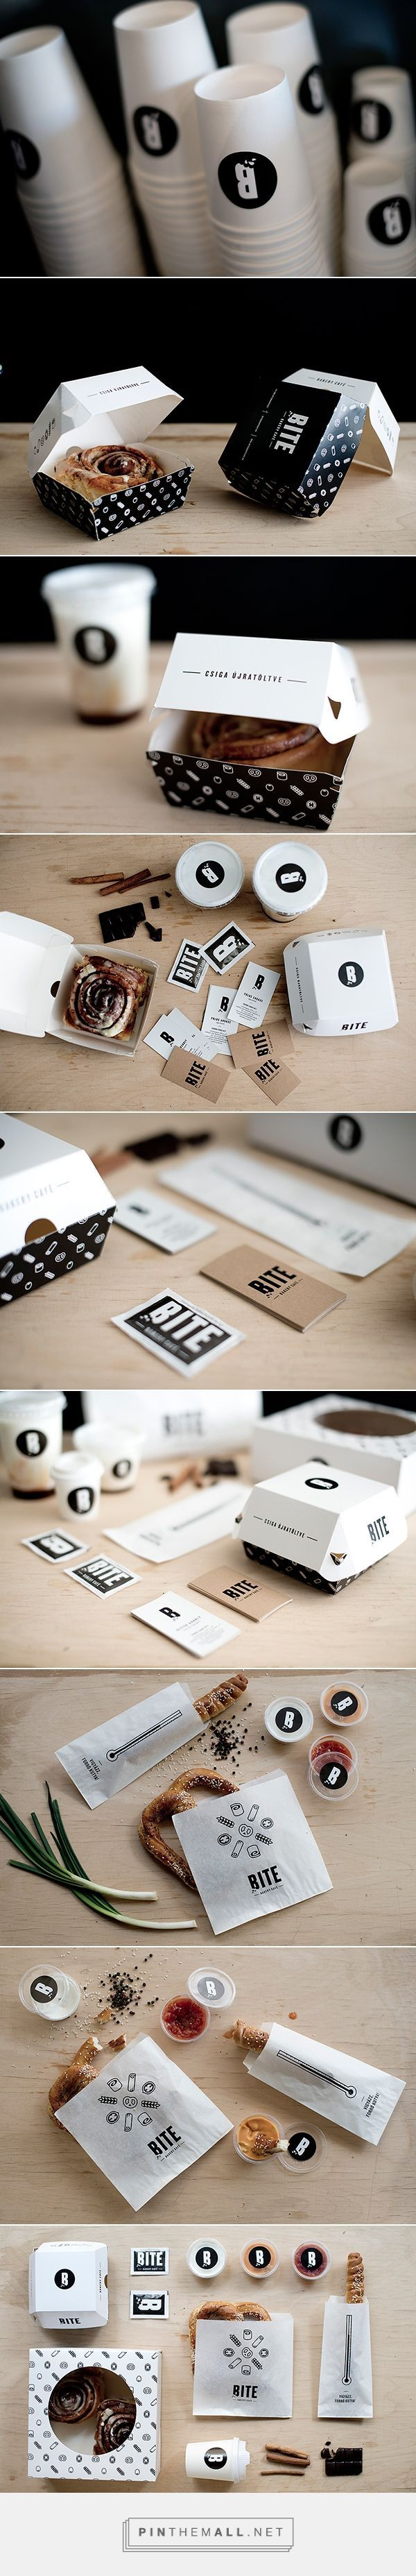 BITE on Behance curated by Packaging Diva PD. Bite interior design, branding and packaging design for a b